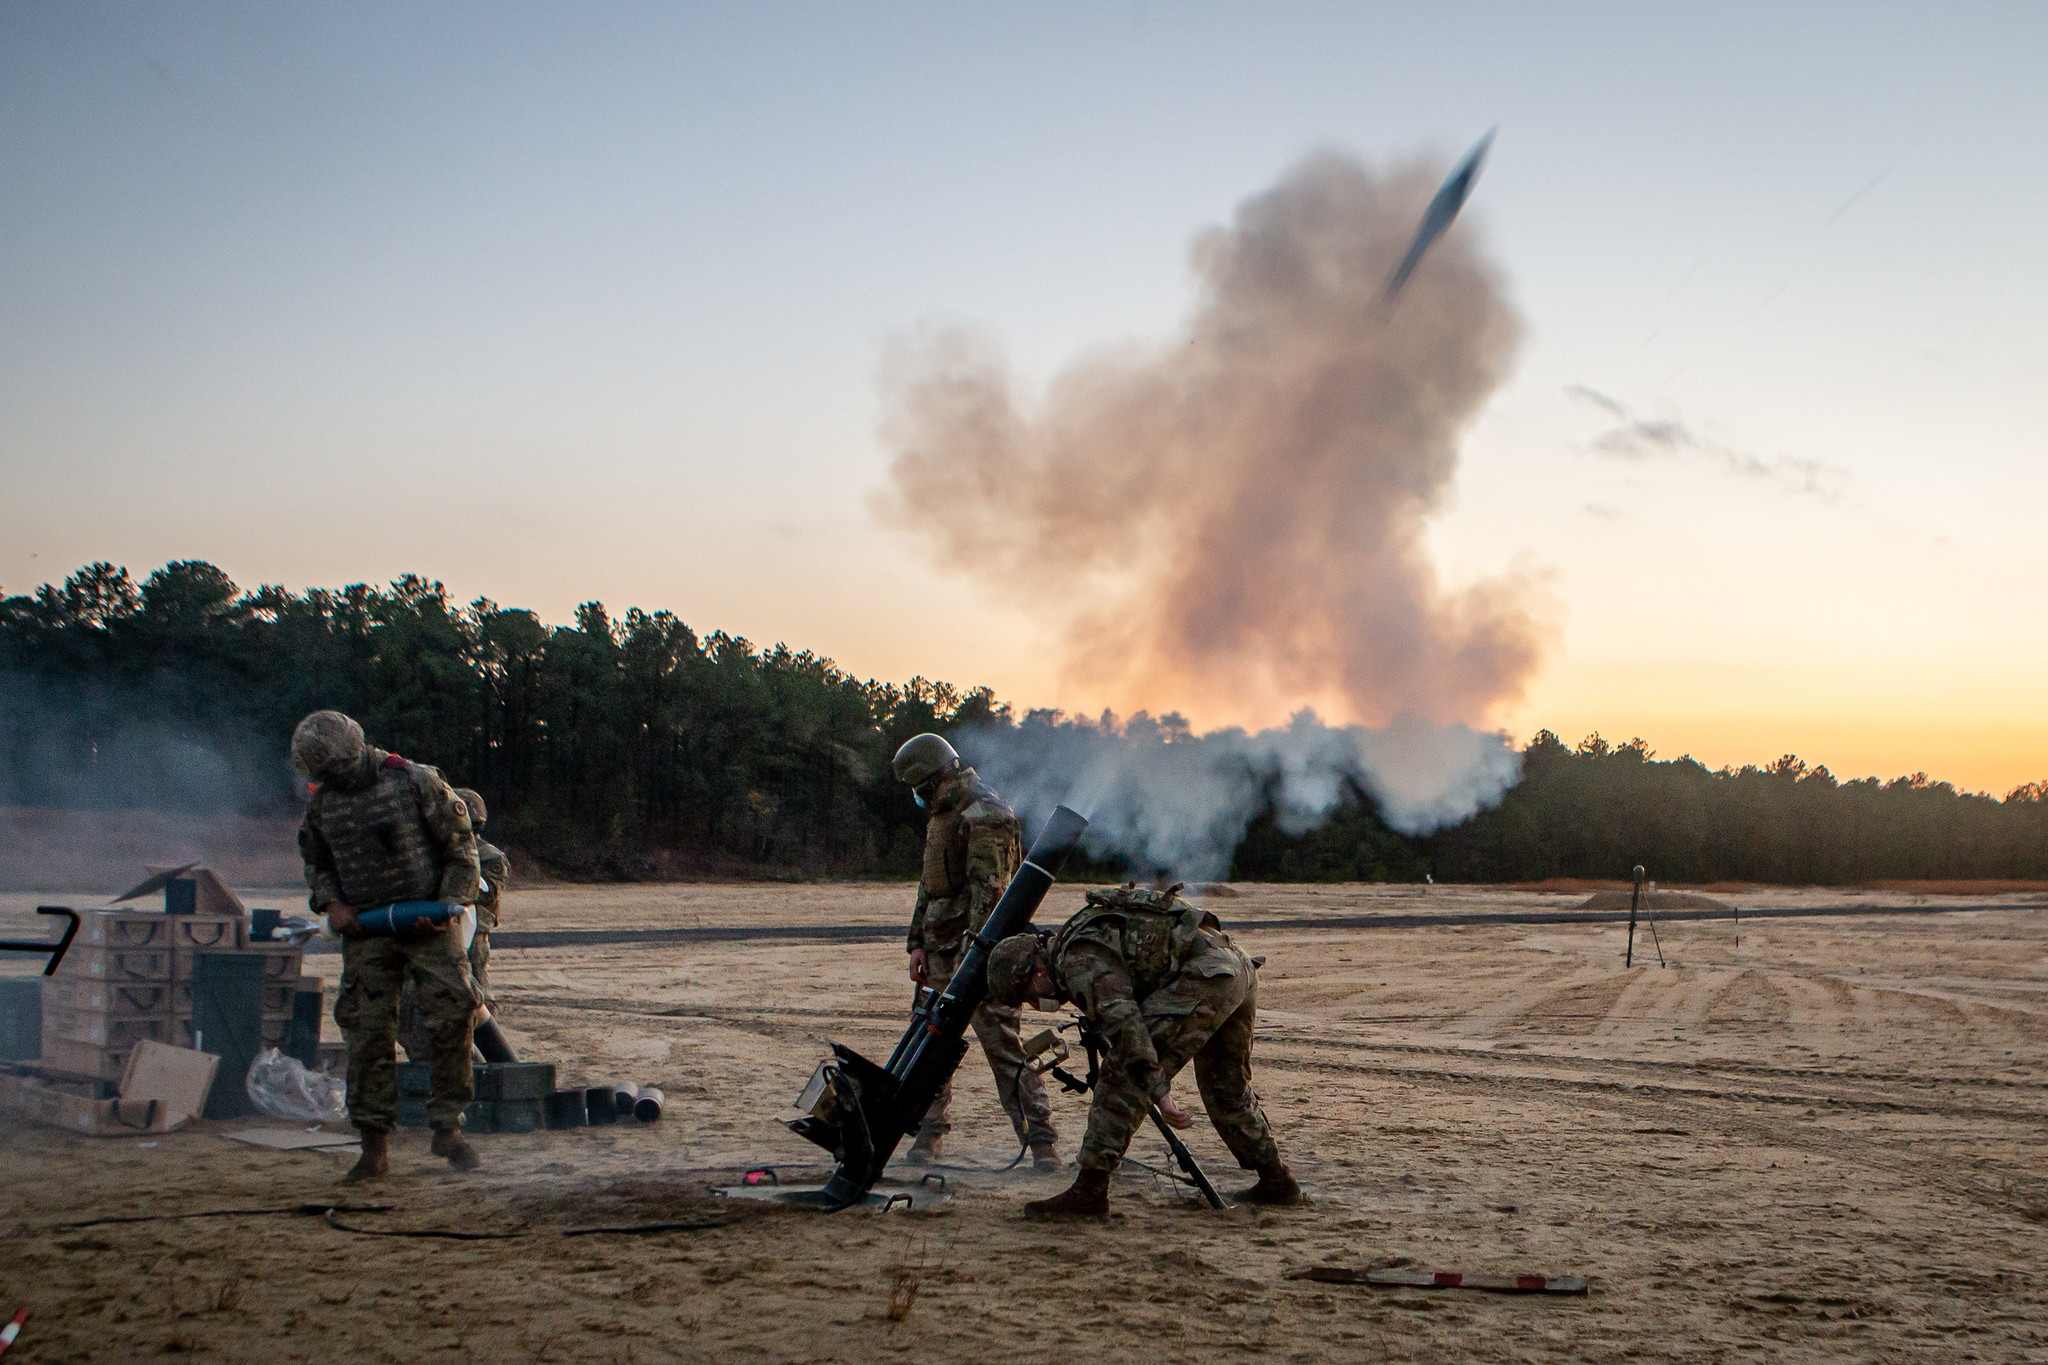 U.S. Army soldiers with the 2nd Battalion, 113th Infantry Regiment, New Jersey Army National Guard, fire the 120mm mortar system on Joint Base McGuire-Dix-Lakehurst, N.J., Nov. 13, 2020. (Spc. Michael Schwenk/Army National Gaurd)